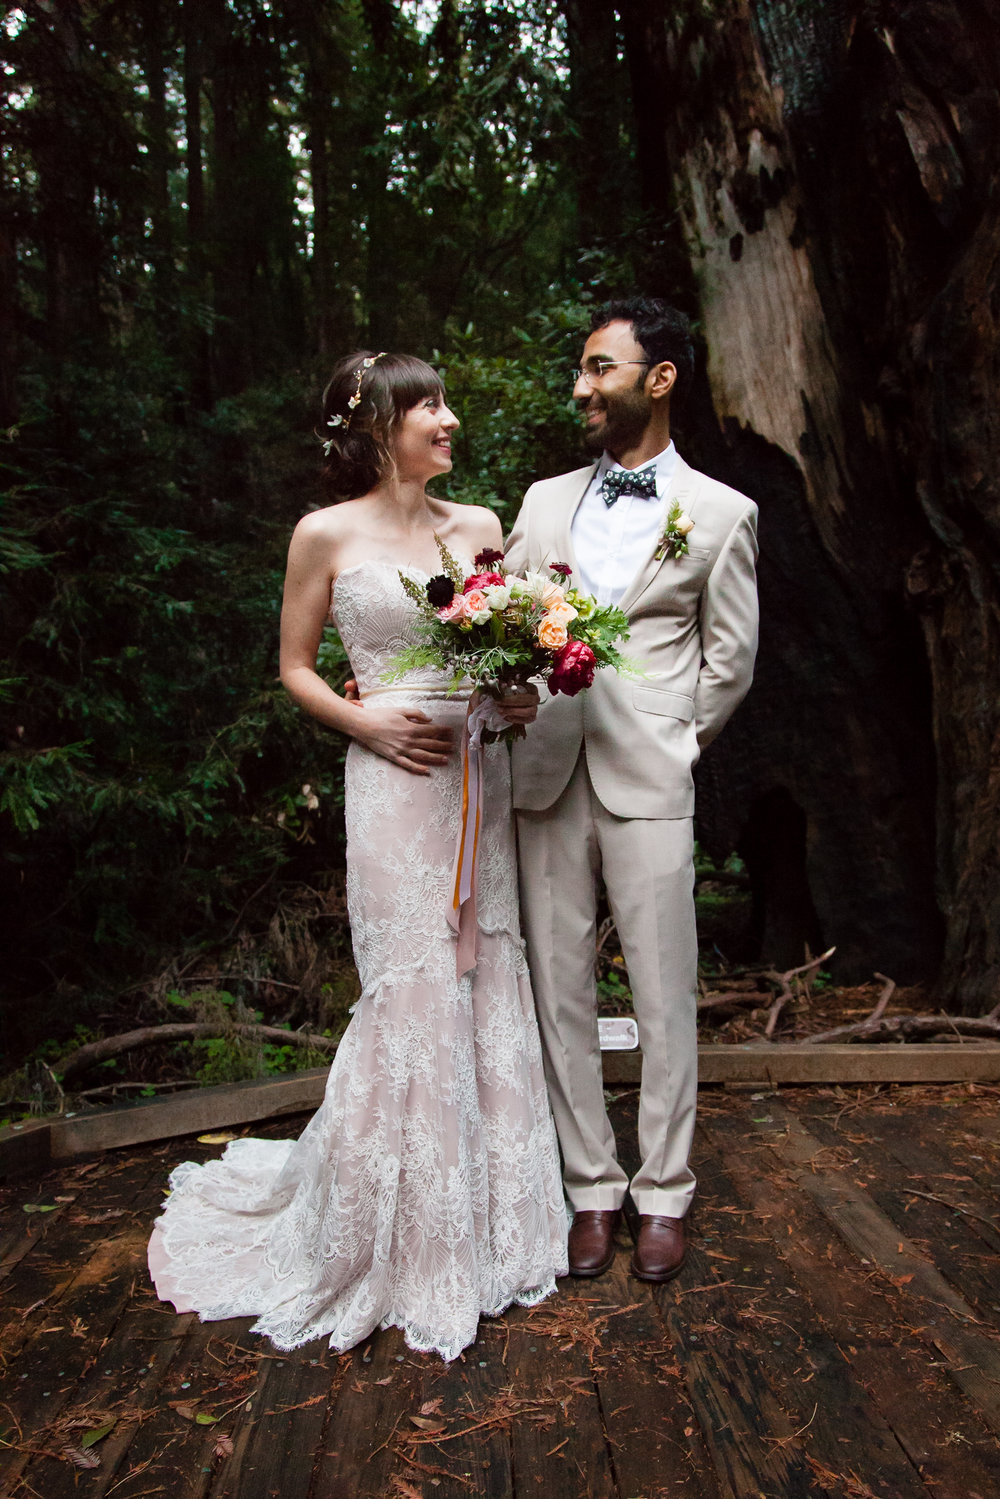 The perfect wedding in the woods!